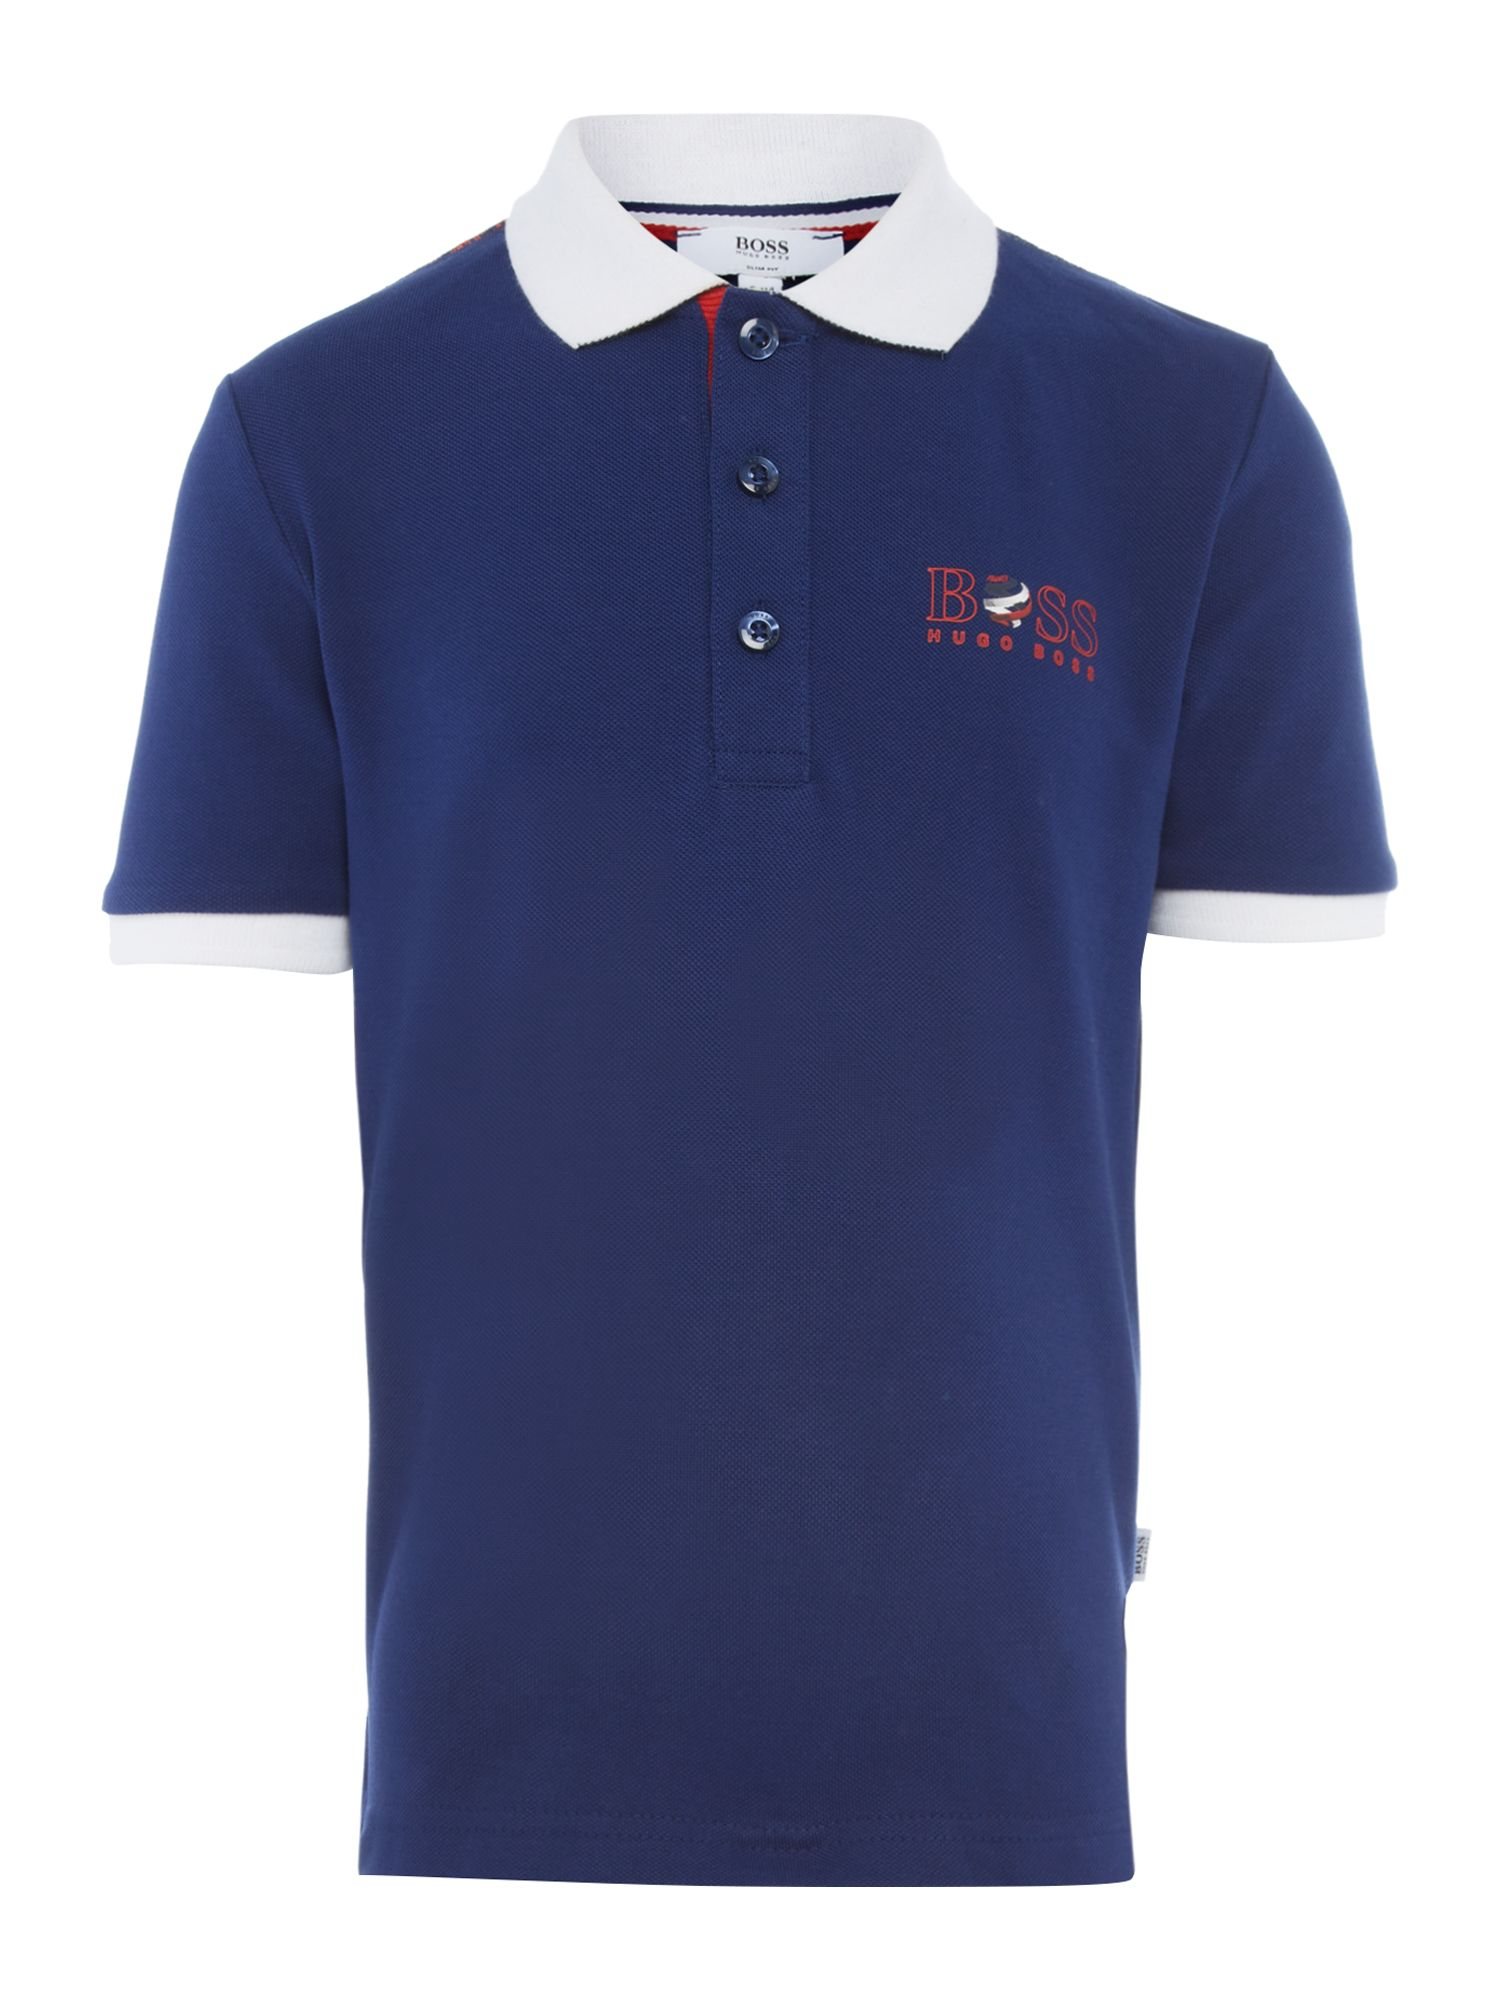 Kids France football colours polo shirt